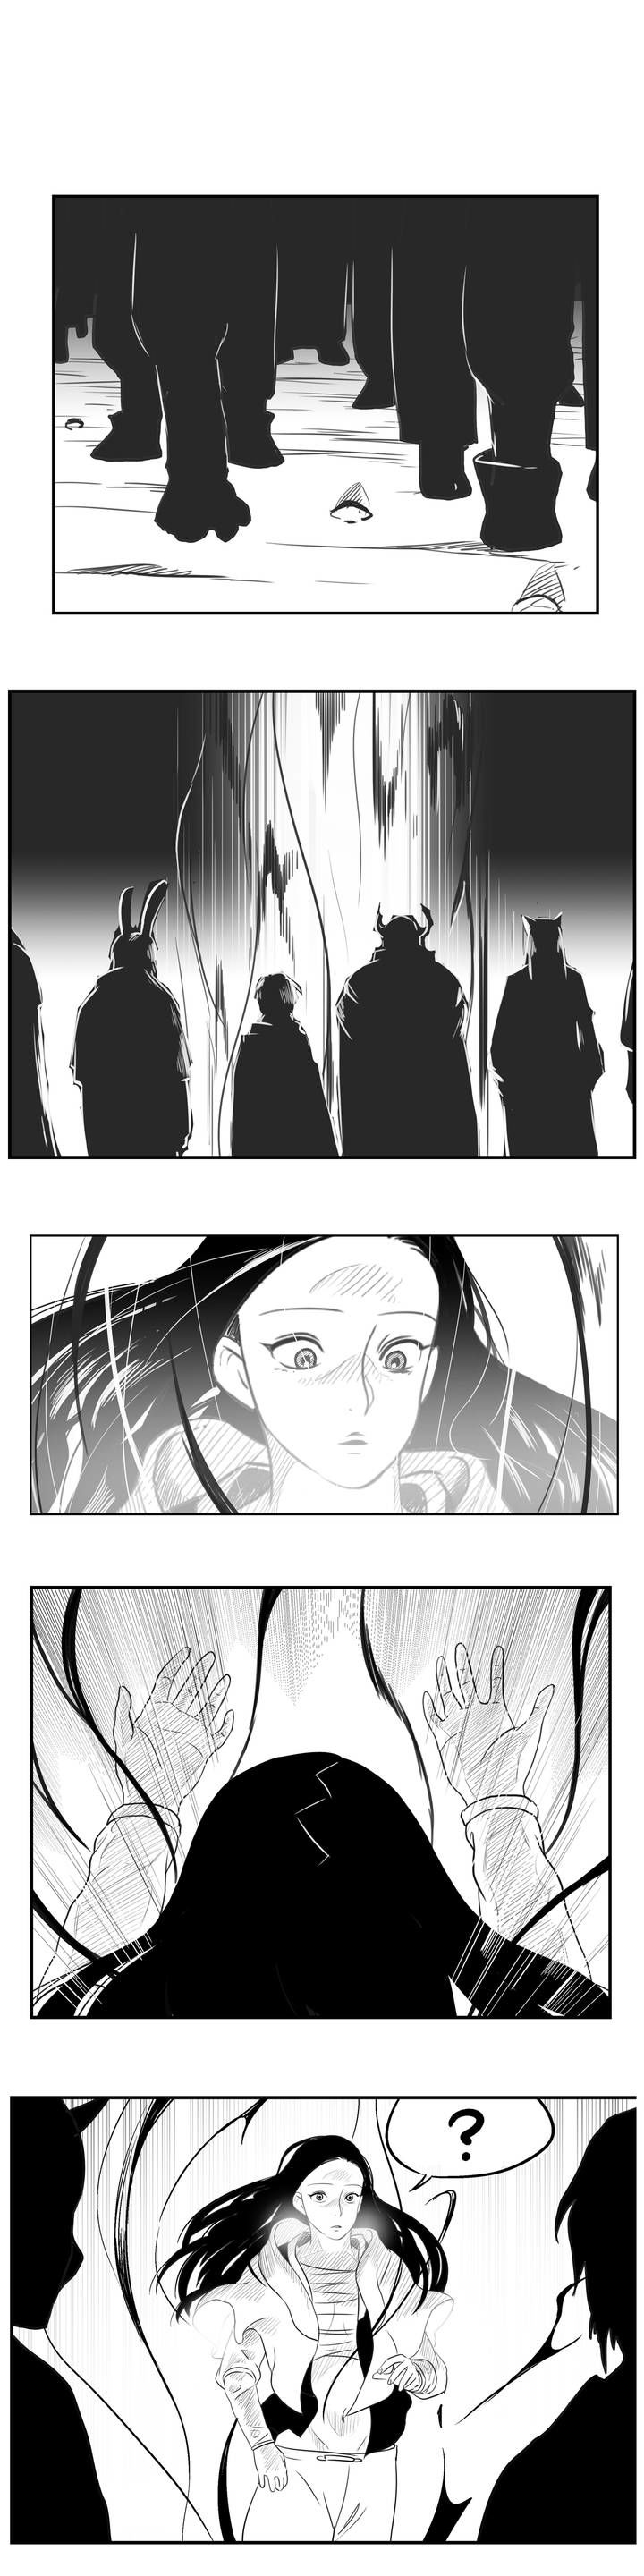 Dosa - Chapter 39